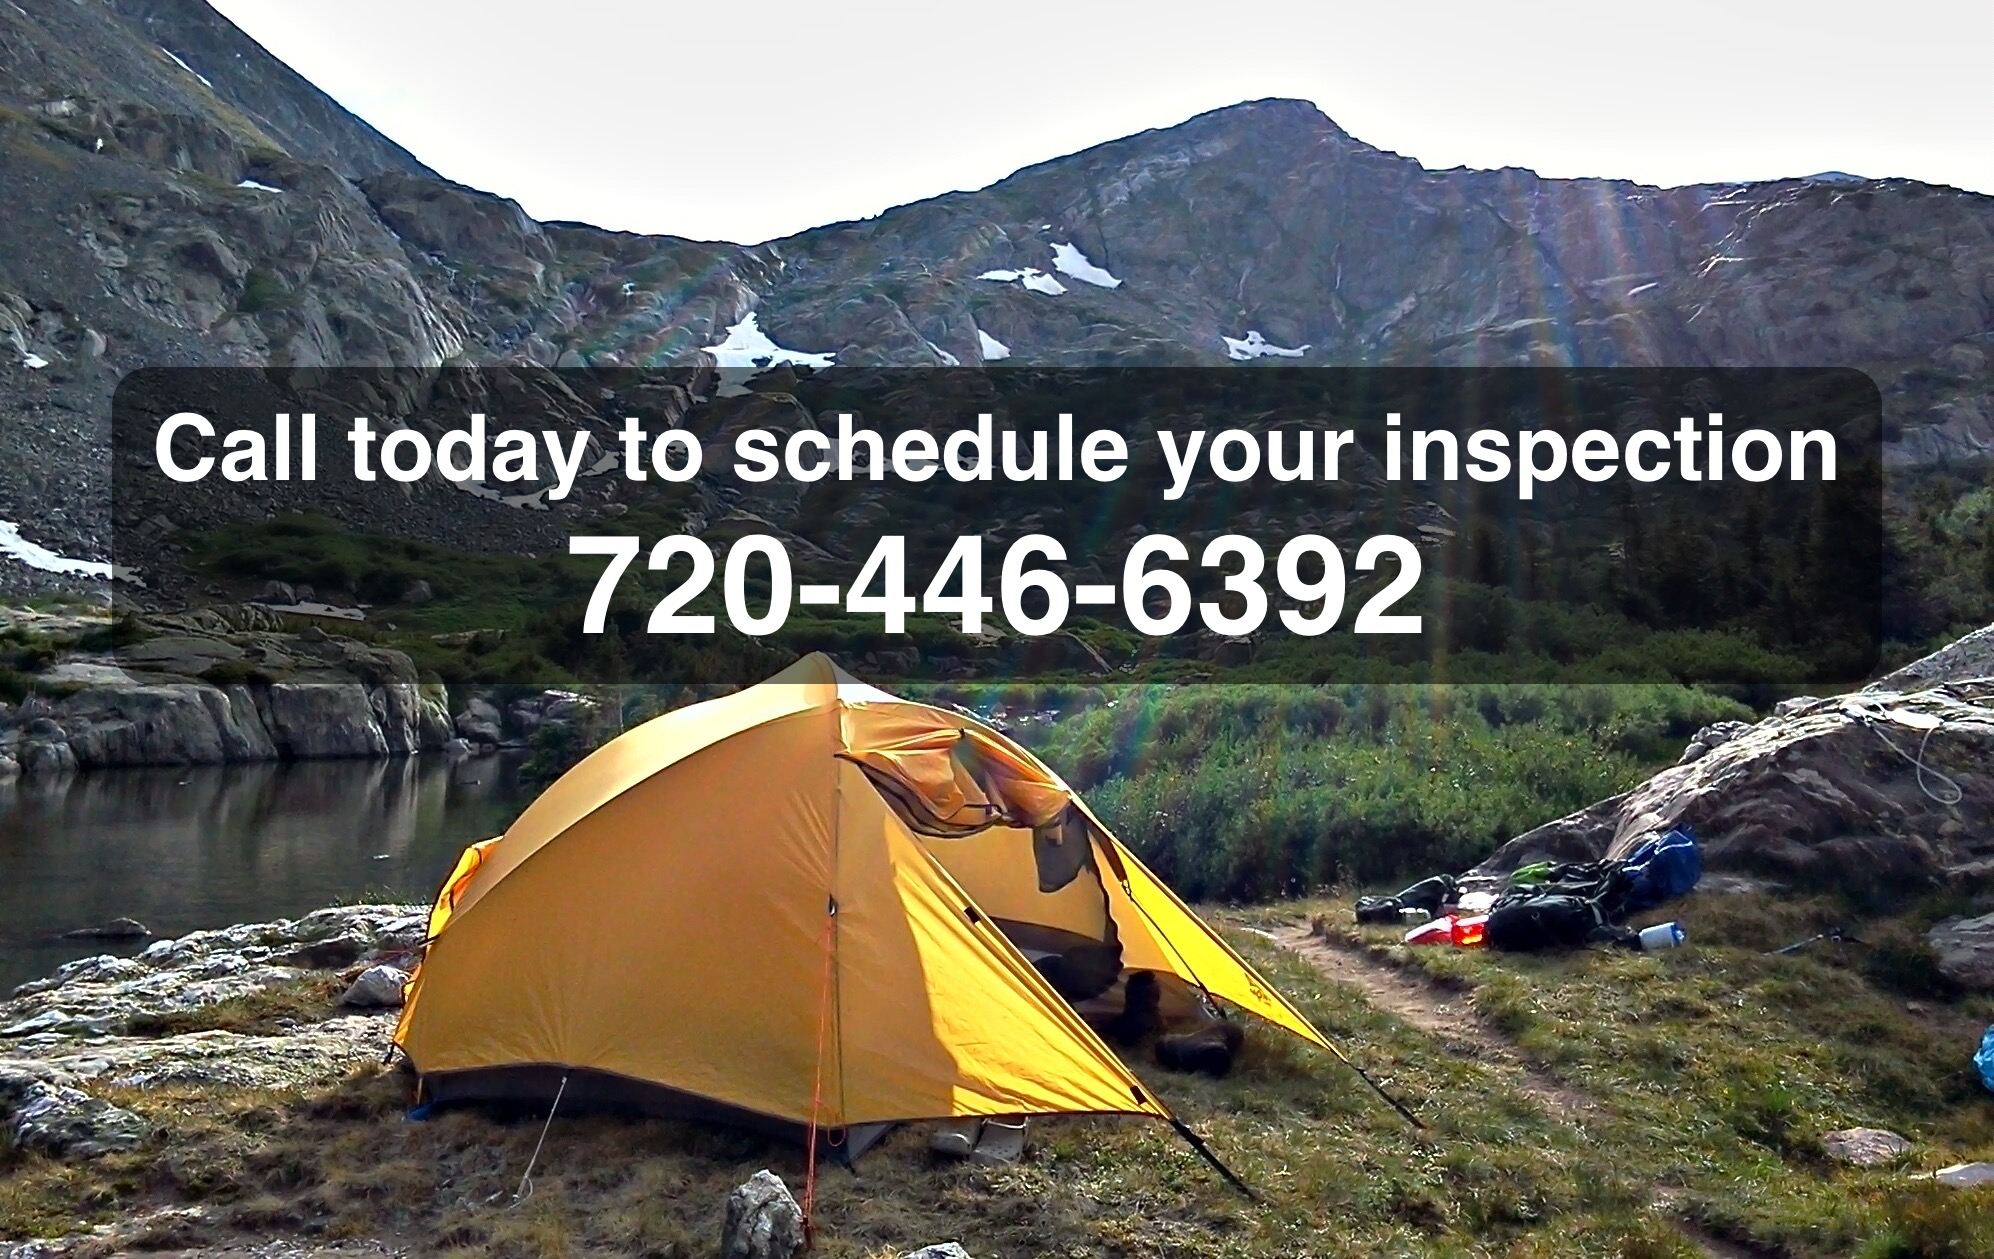 BaseCamp Tent Call to Schedule - 1.jpg